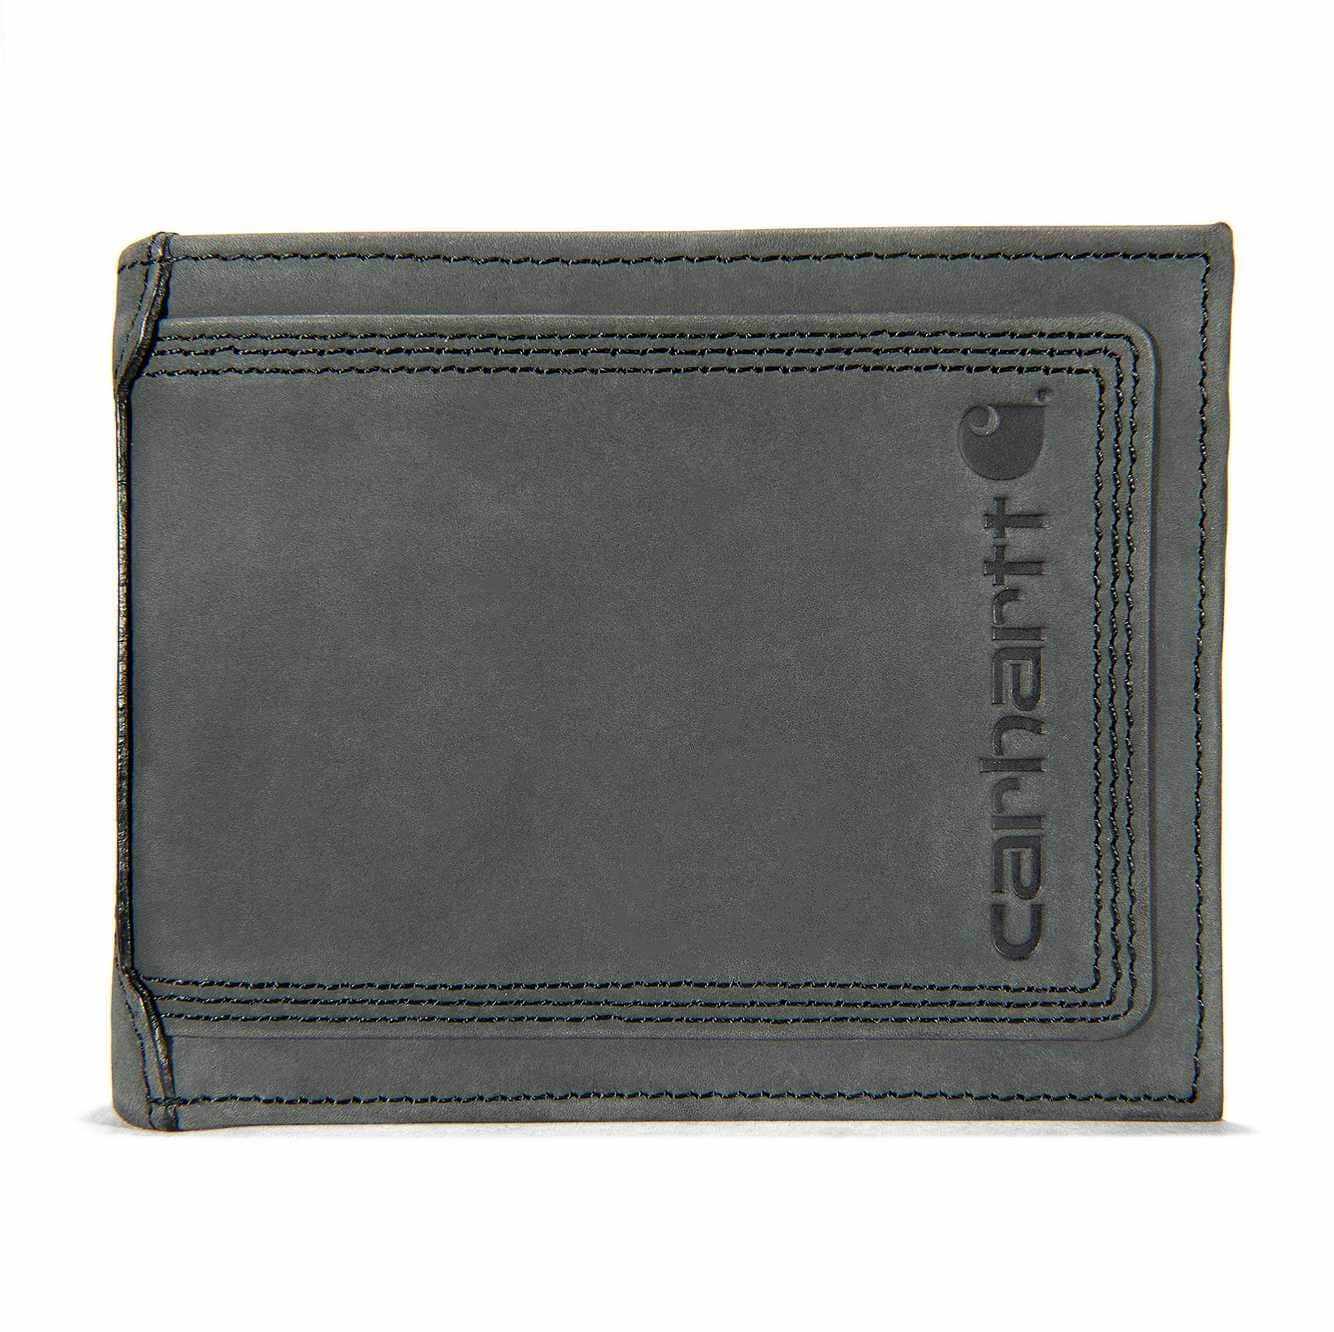 Picture of Detroit Passcase in Black